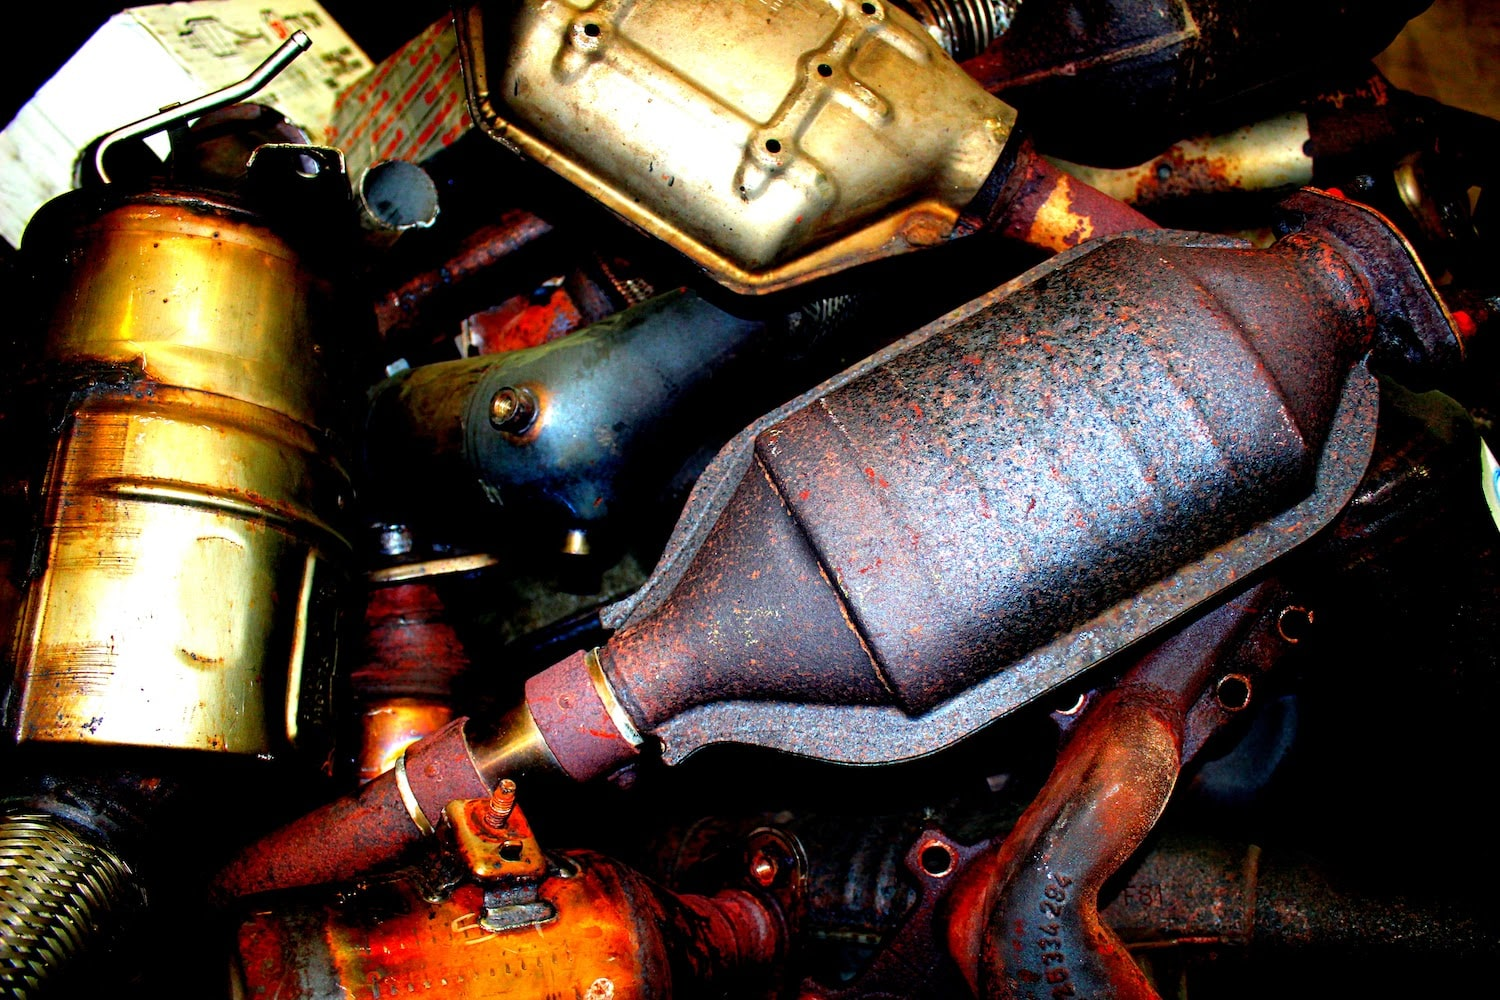 Pile of catalytic converters